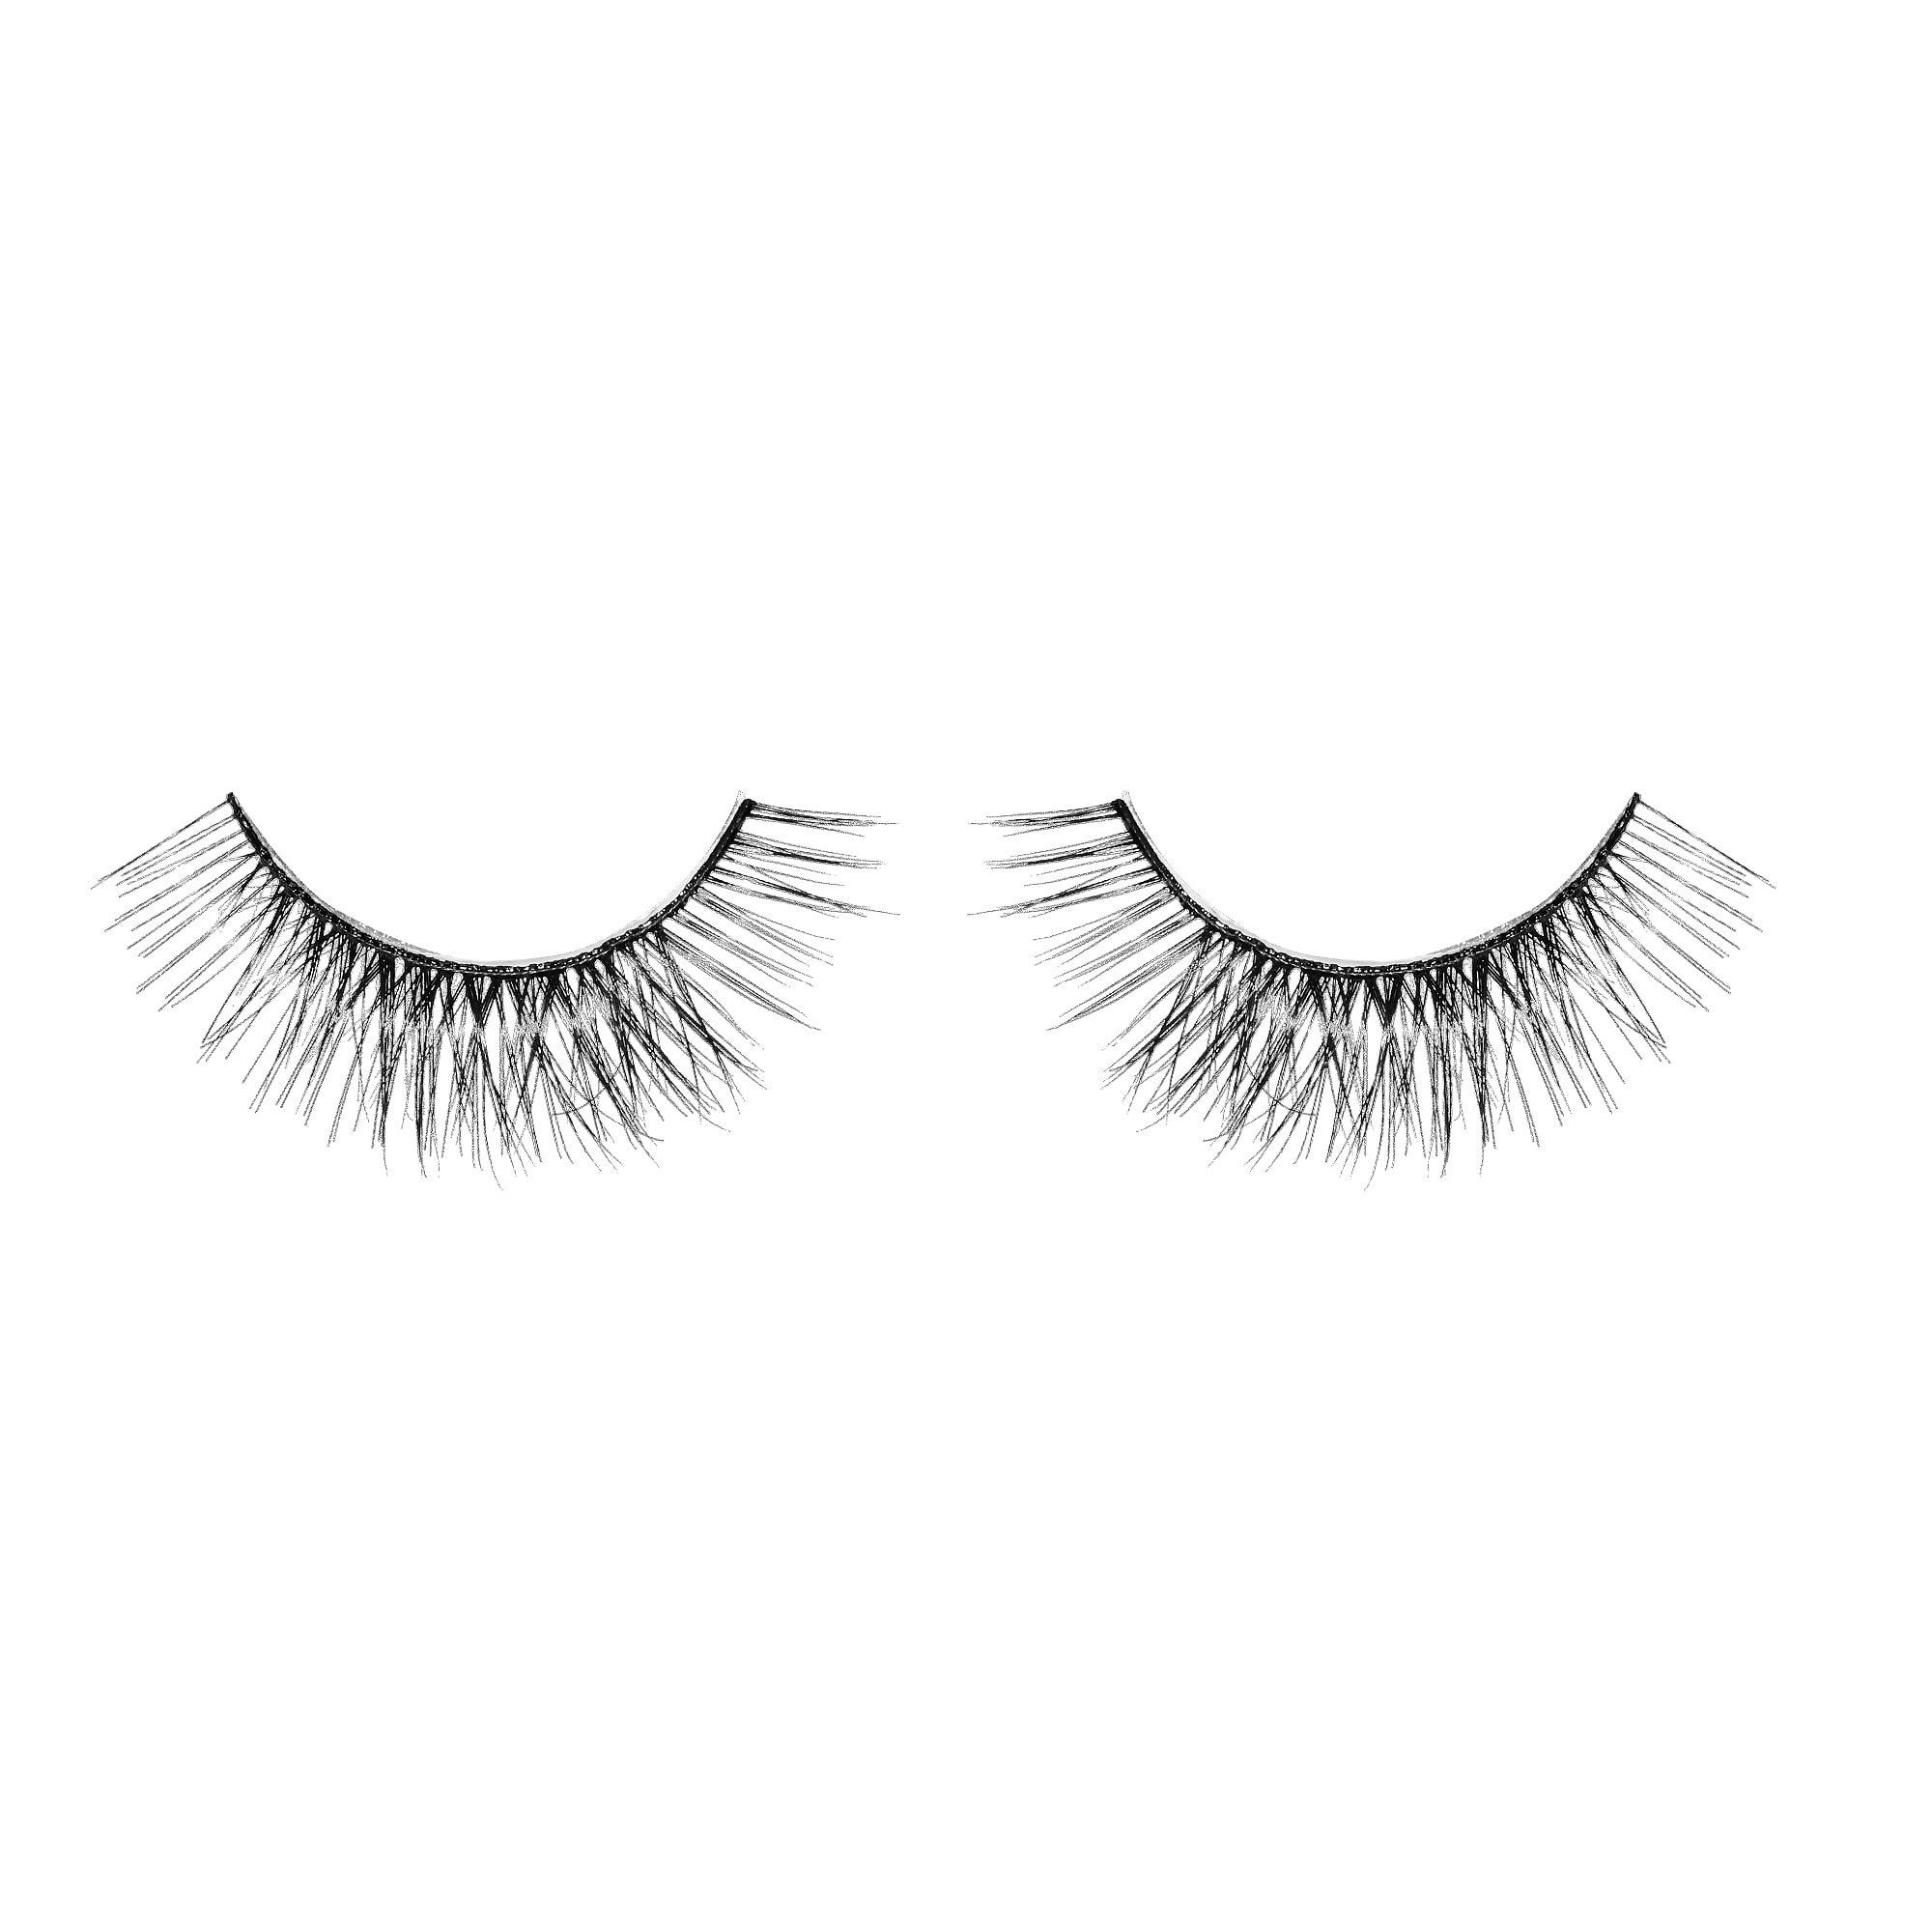 f4d2139eefb Sephora Collection False Eye Lashes Mink #32 in 2019 | Products ...